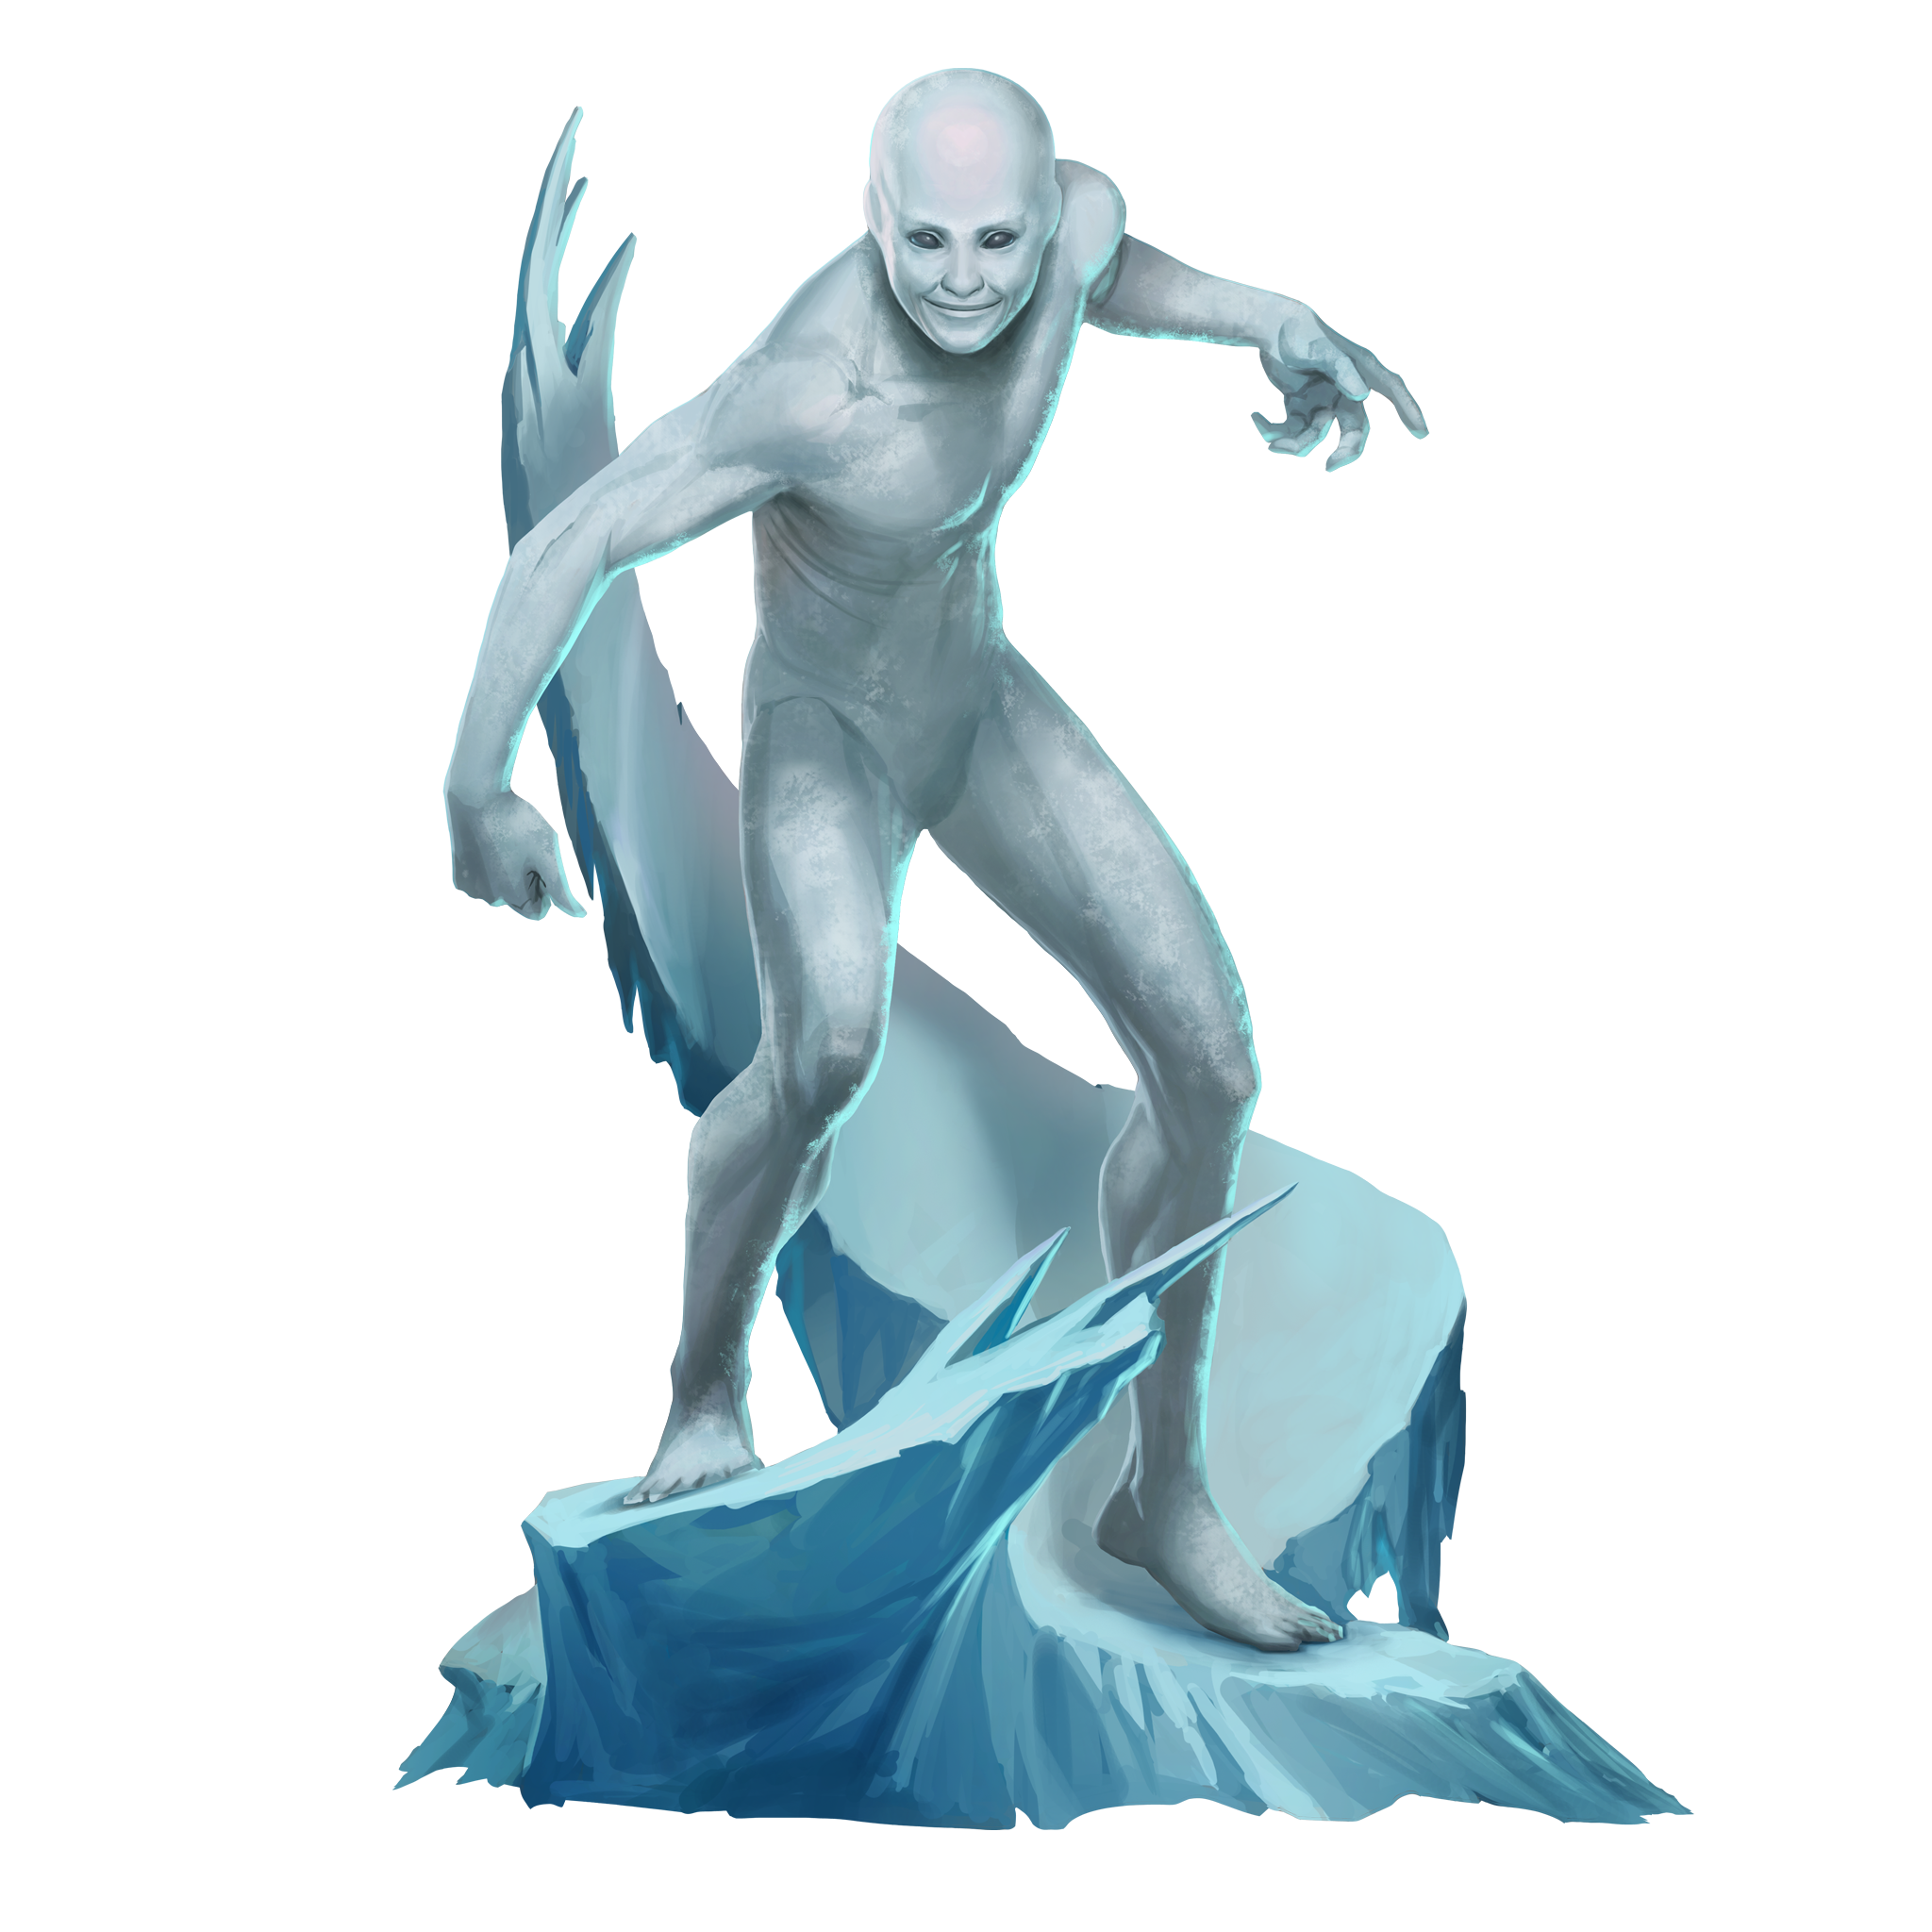 Xmen drawing ice man. Iceman character art pinterest